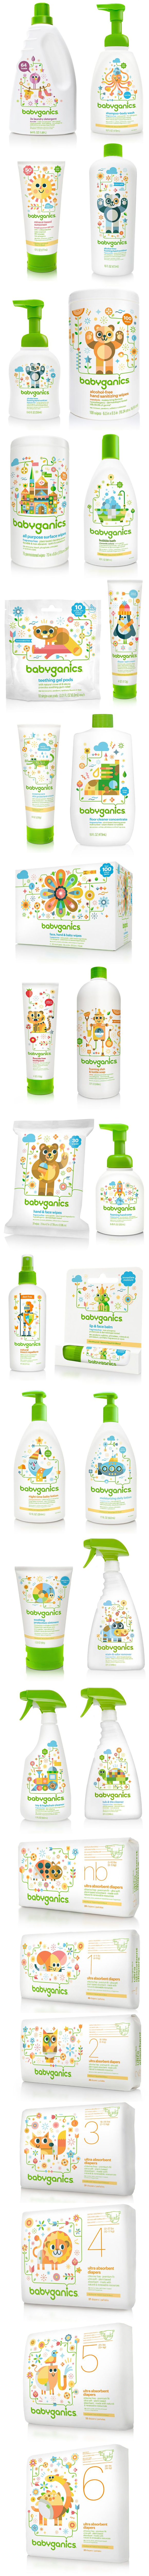 Check out this gorgeous #plastic #packaging for BabyGanics products.